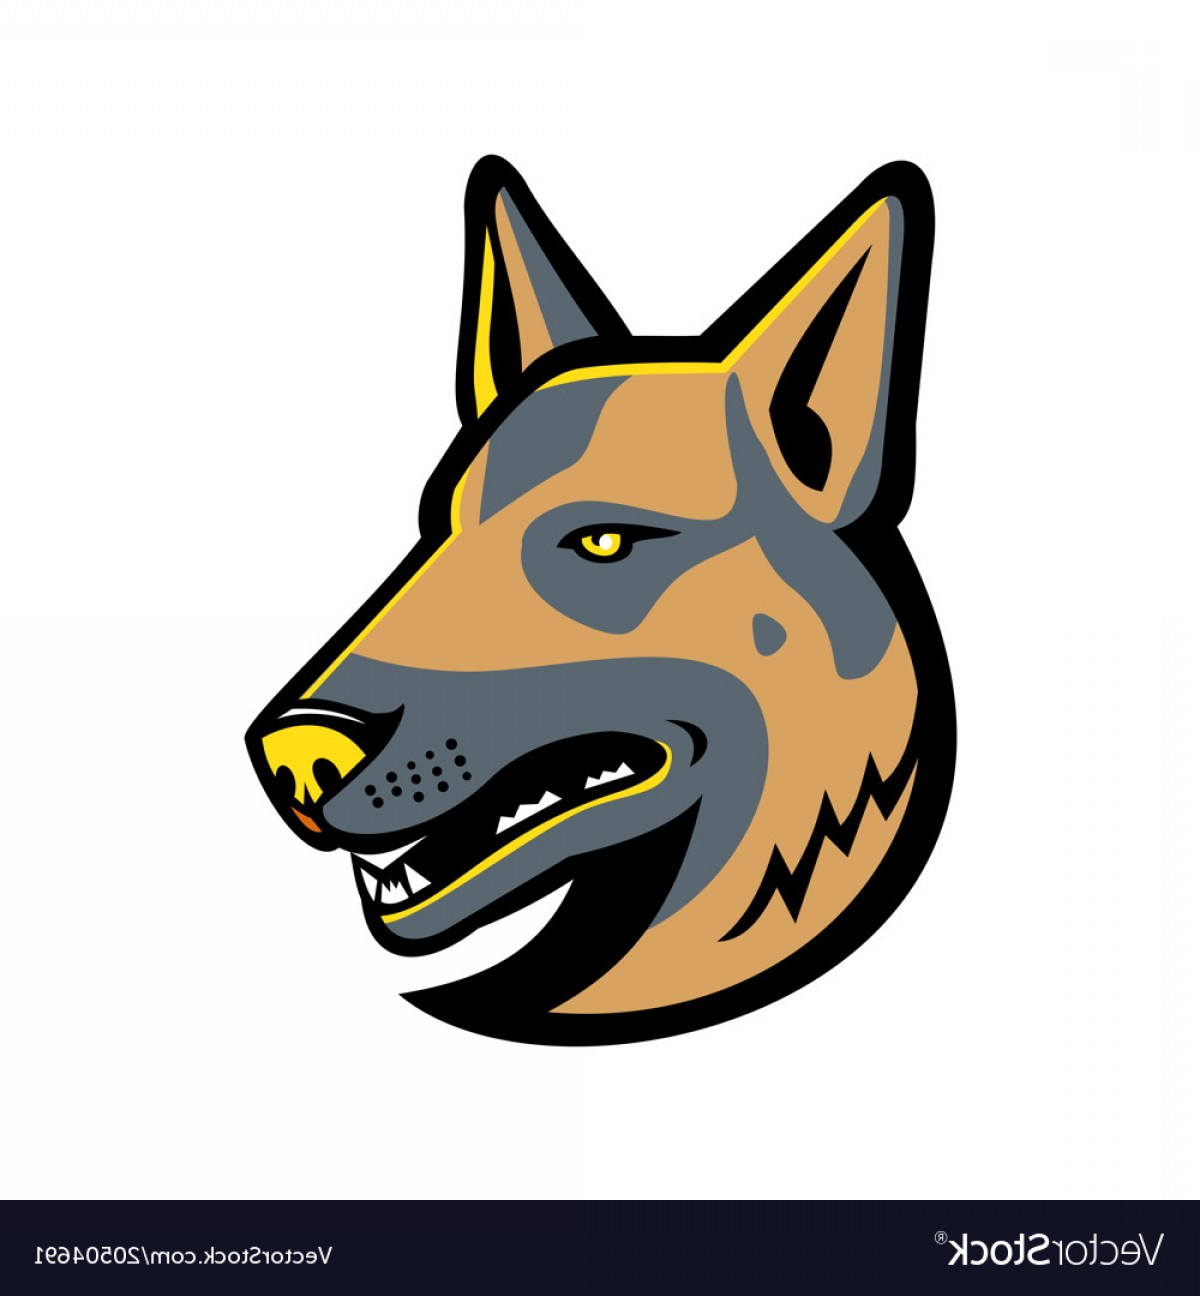 Dog Mascot Vector: German Shepherd Dog Mascot Vector